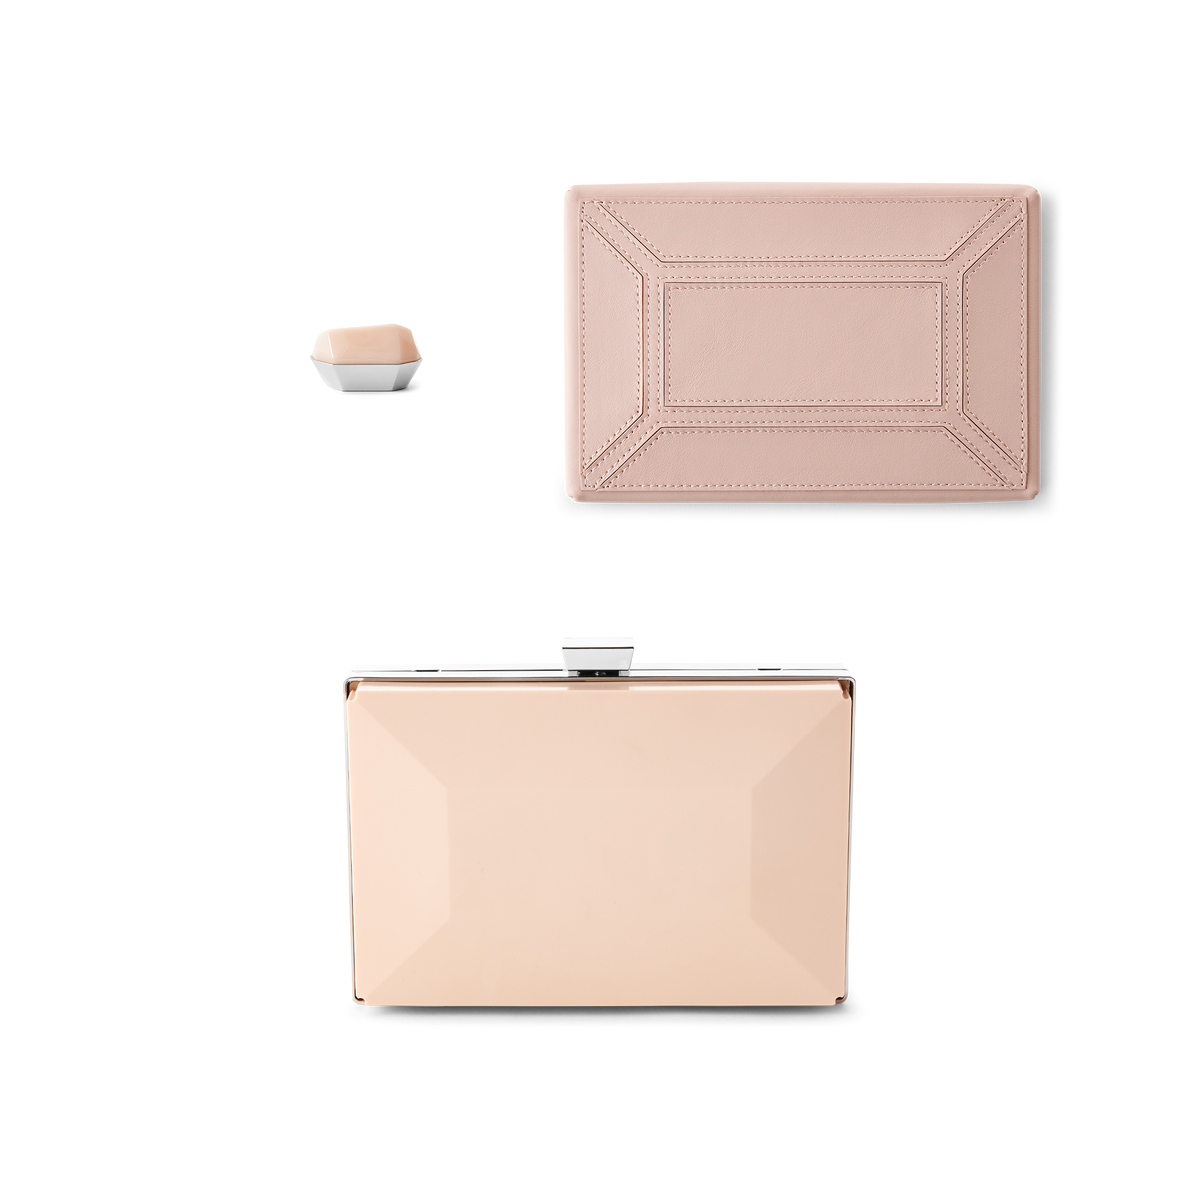 Rose Bare Bag Kit with Rose Leather Covers and Rose Facets Clasp